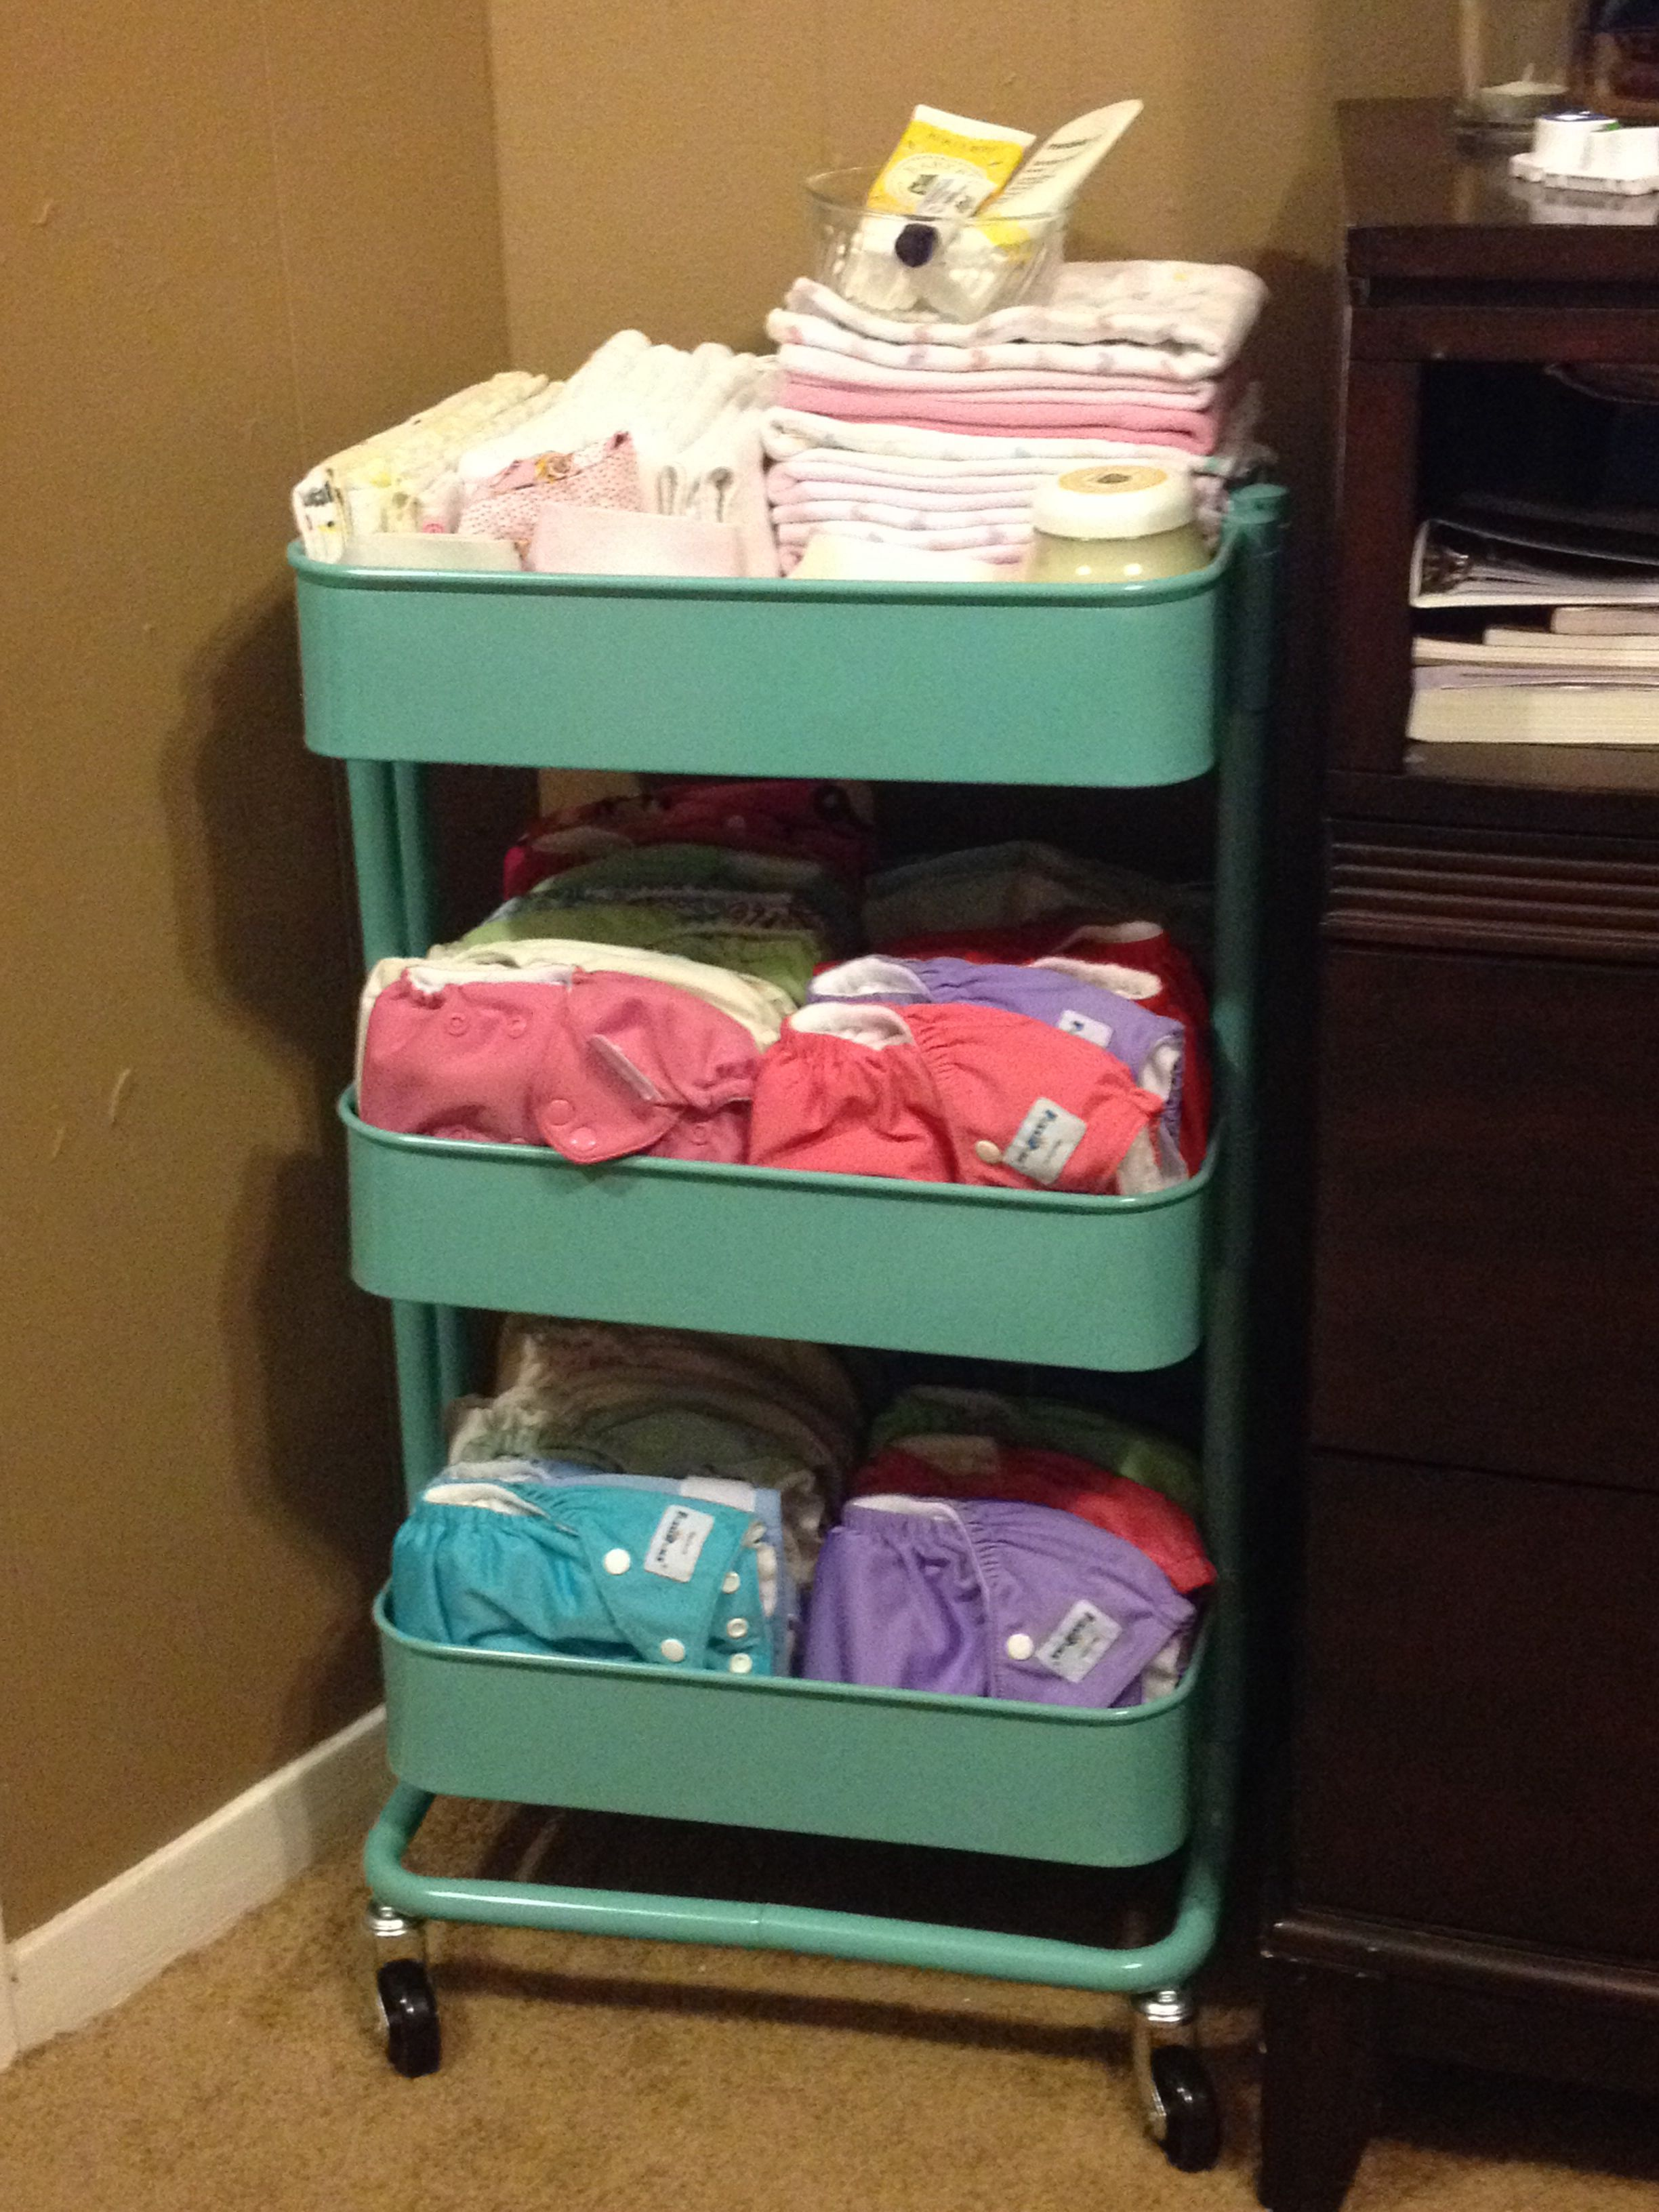 Storage For Cloth Diapers Diaper Storage Cloth Diaper Organization Diaper Organization